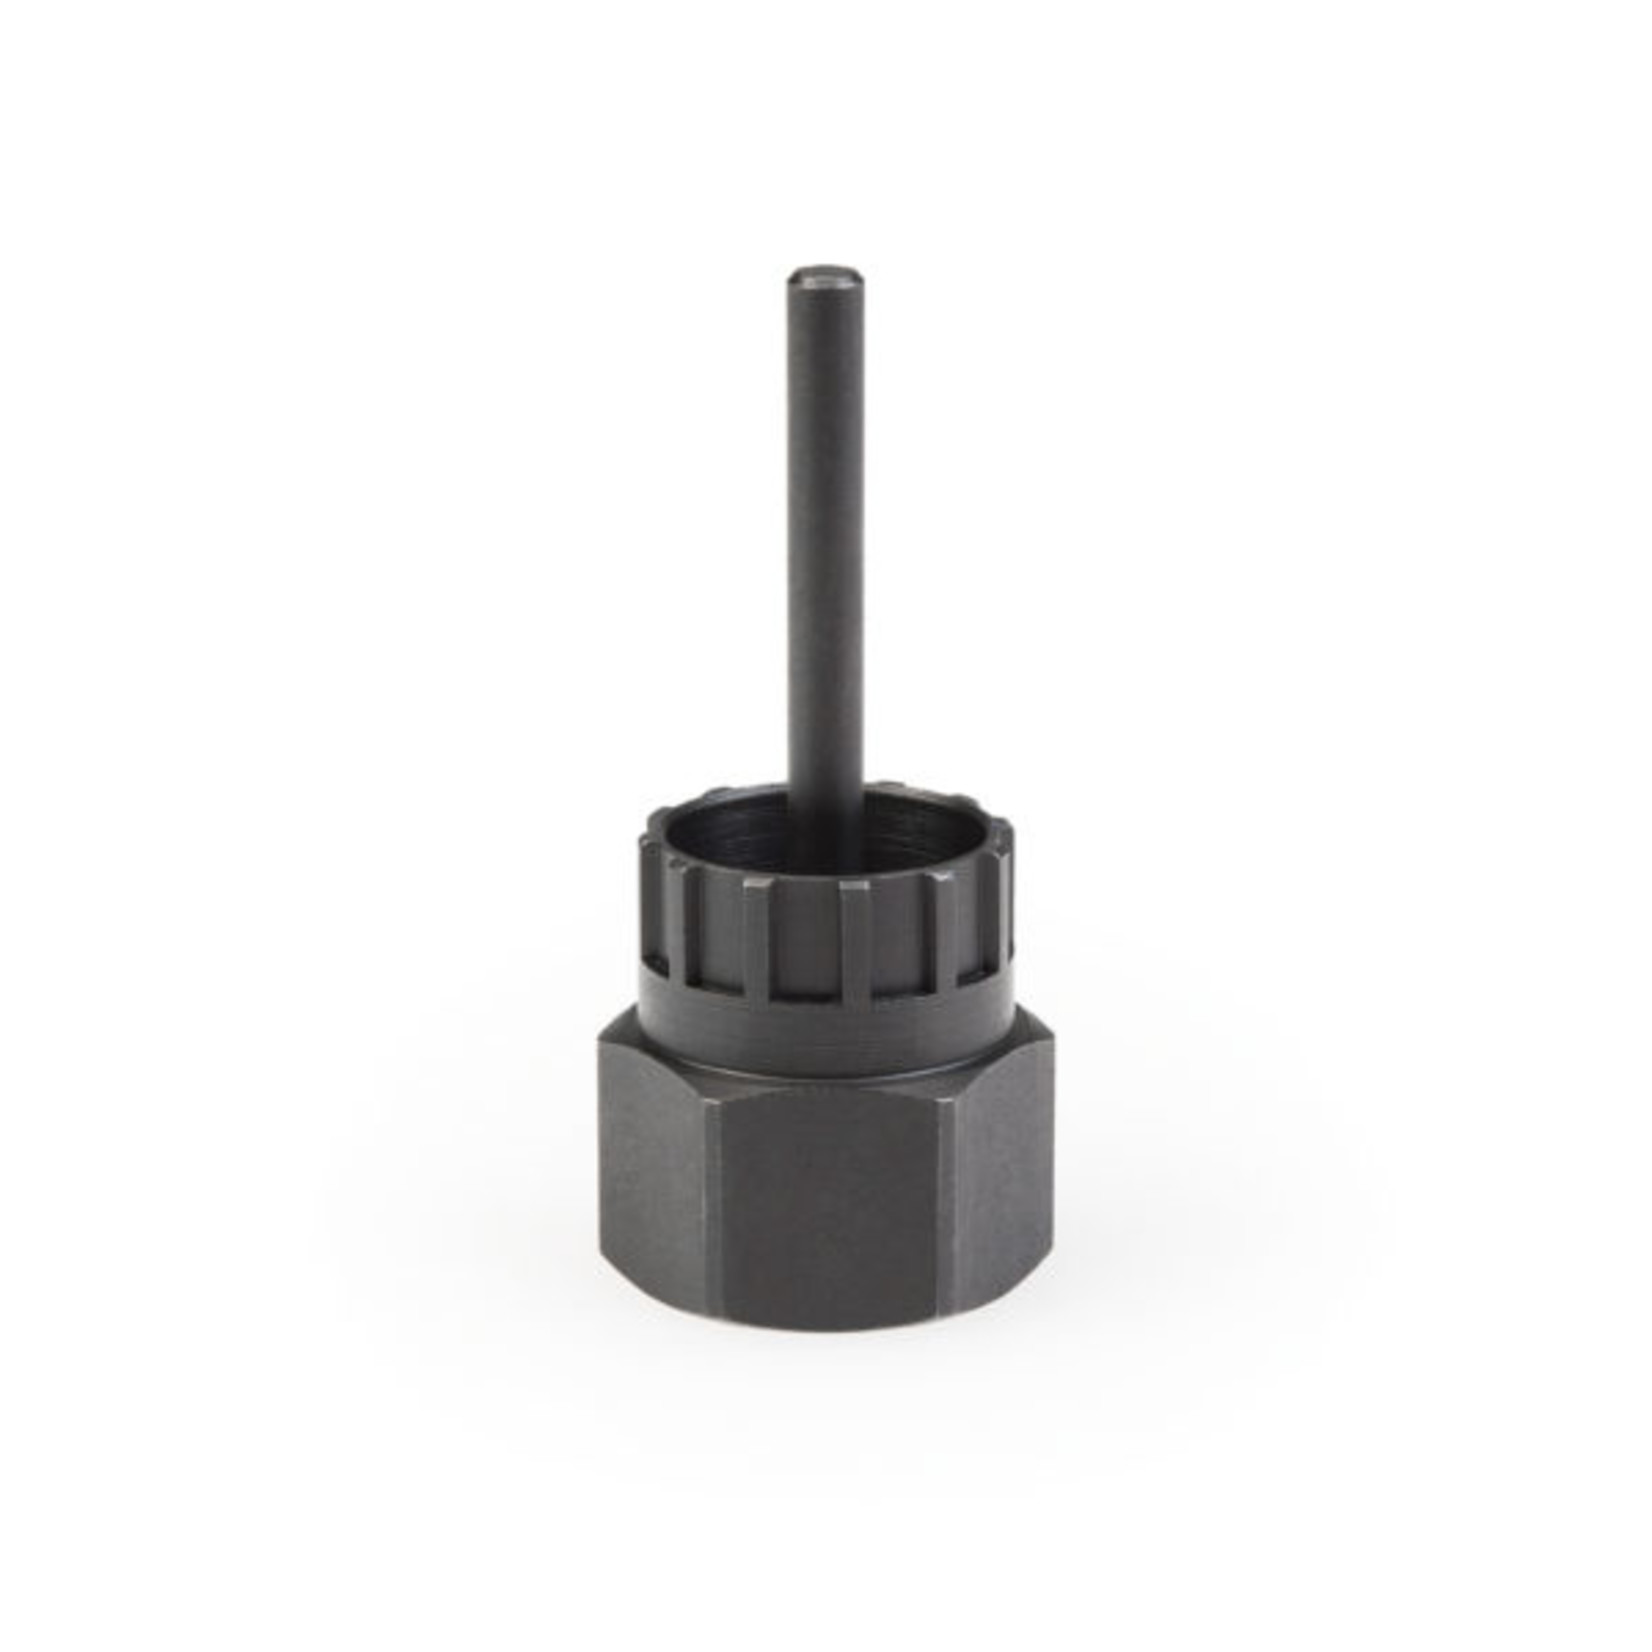 Park Tool Park Tool FR-5.2G Cassette Lockring Tool (with guide pin)